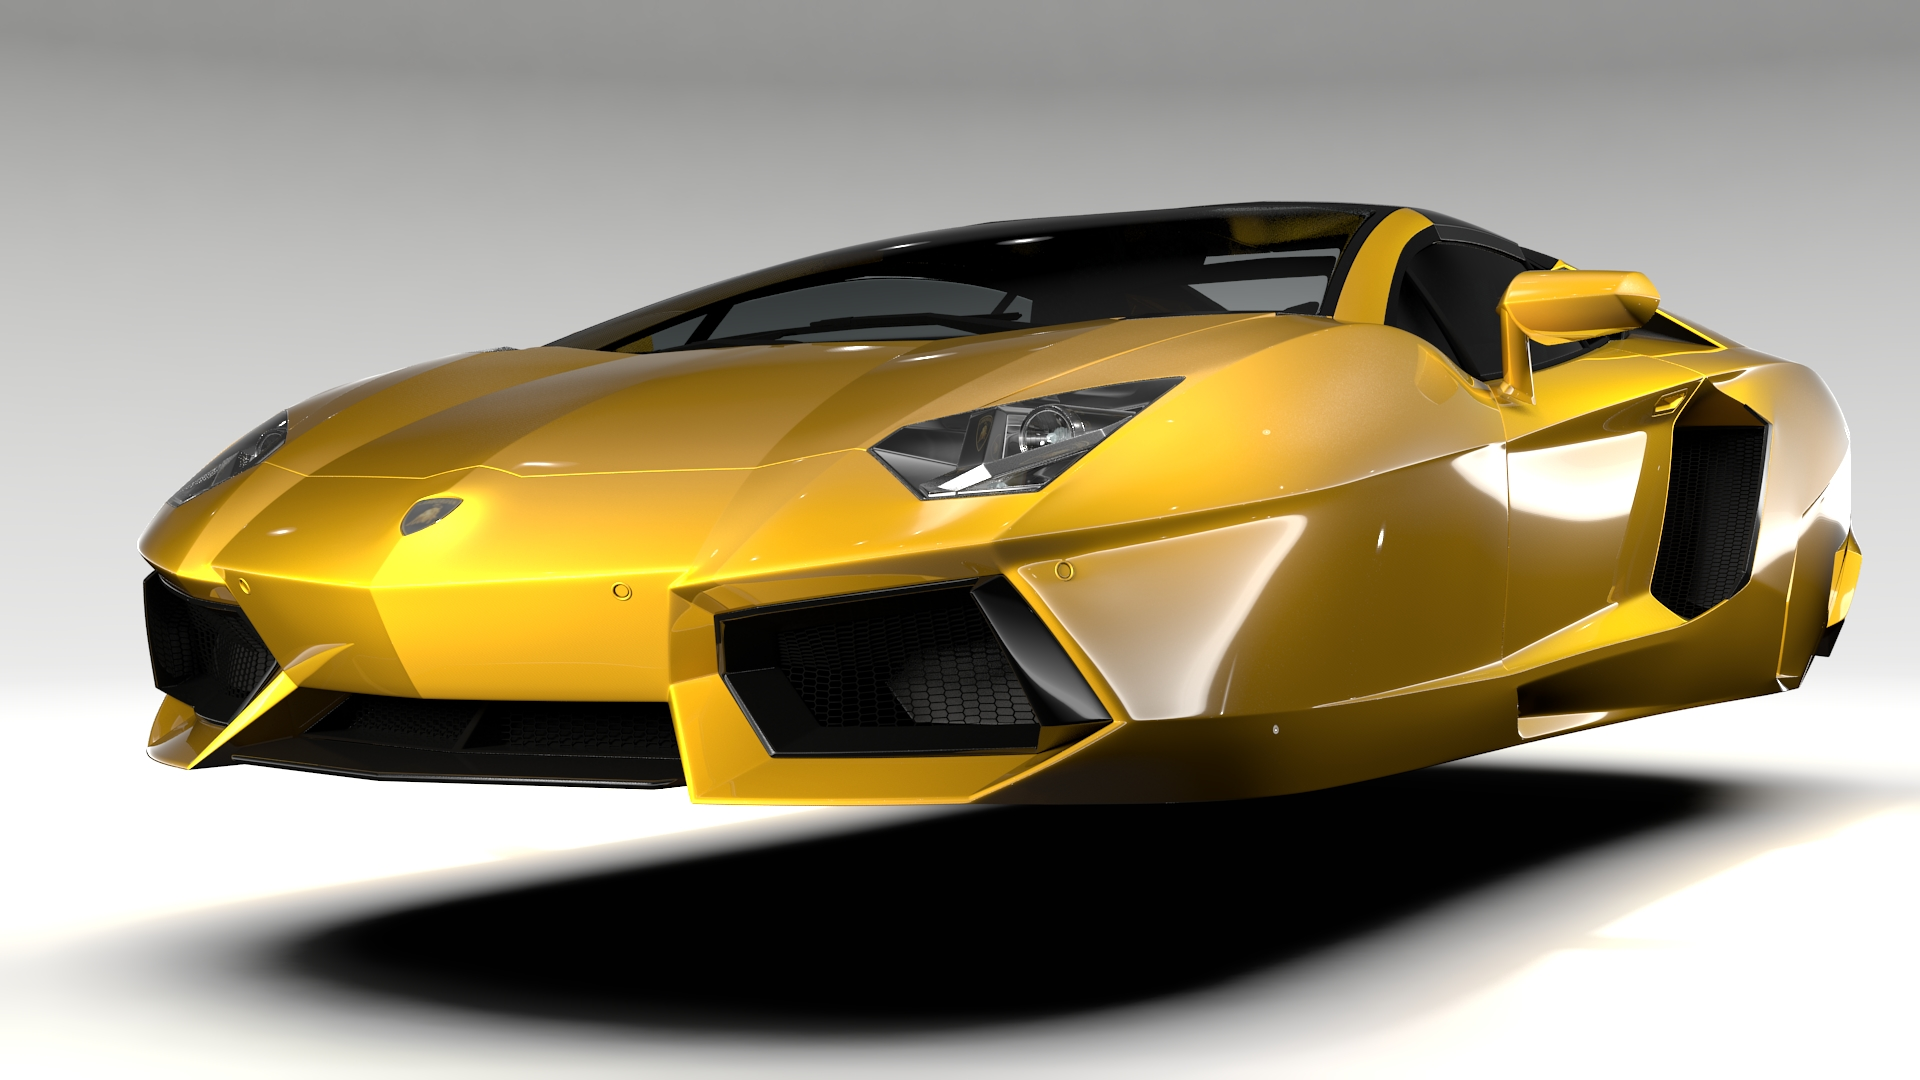 Lovely Lamborghini Aventador Fantasy Crystal Home Fly Car. Lamborghini Aventador  Flying D Model